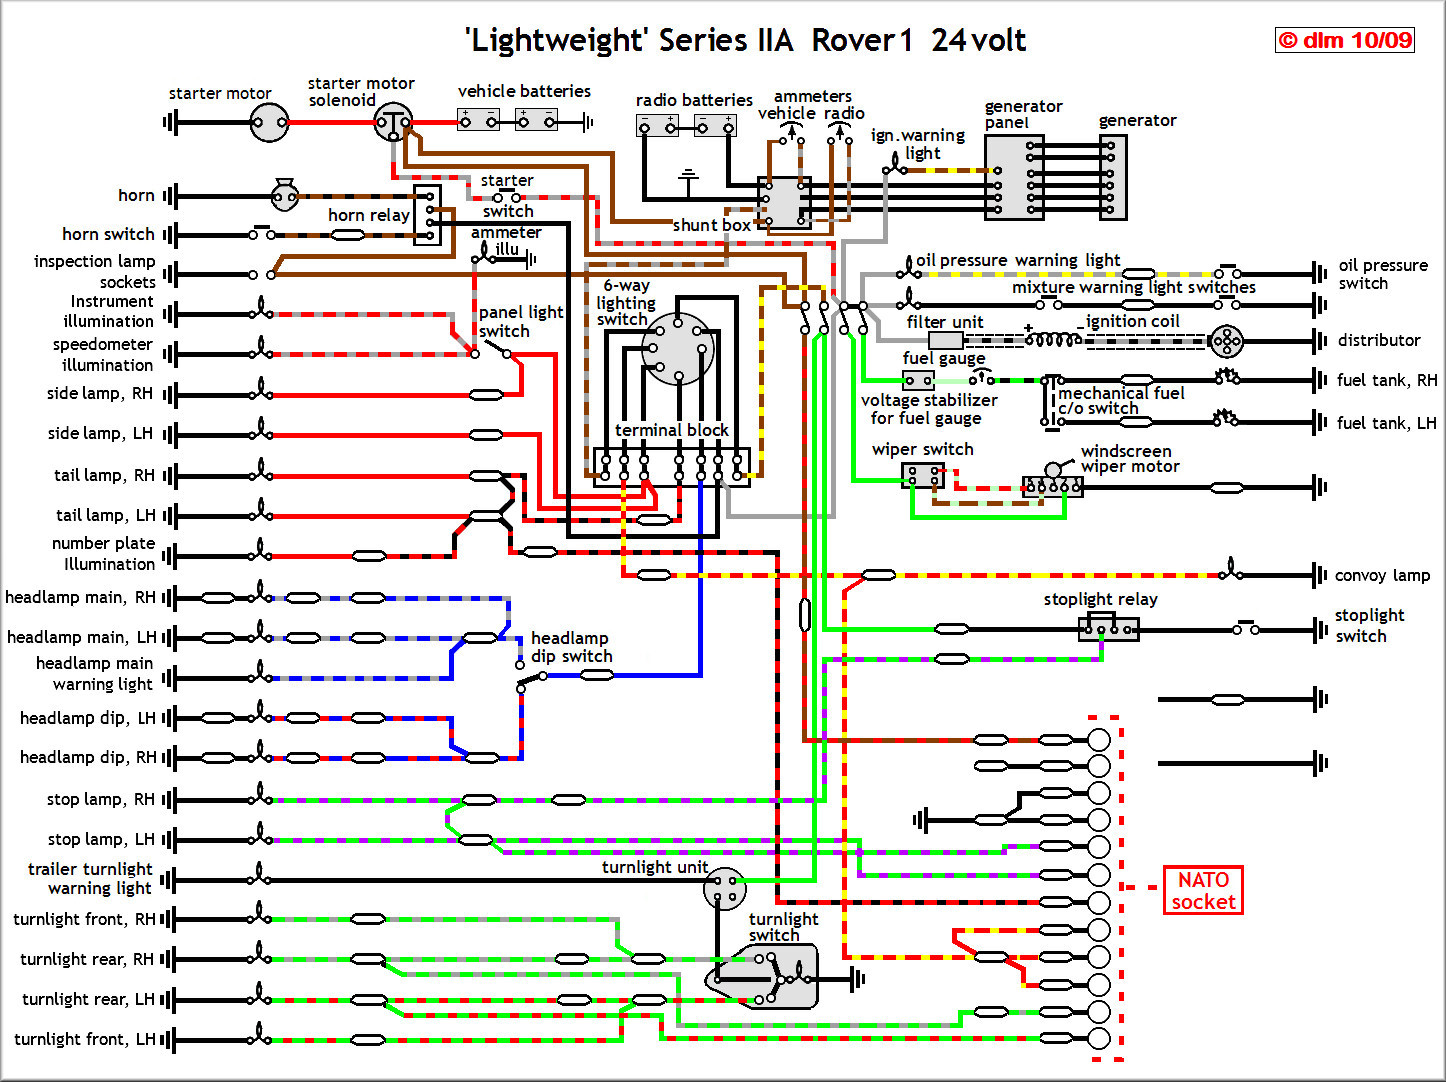 Land Rover 110 Wiring Diagrams Auto Electrical Wiring Diagram BMW Wiring  Diagrams Visual 90 Rx7 Wiring Diagram